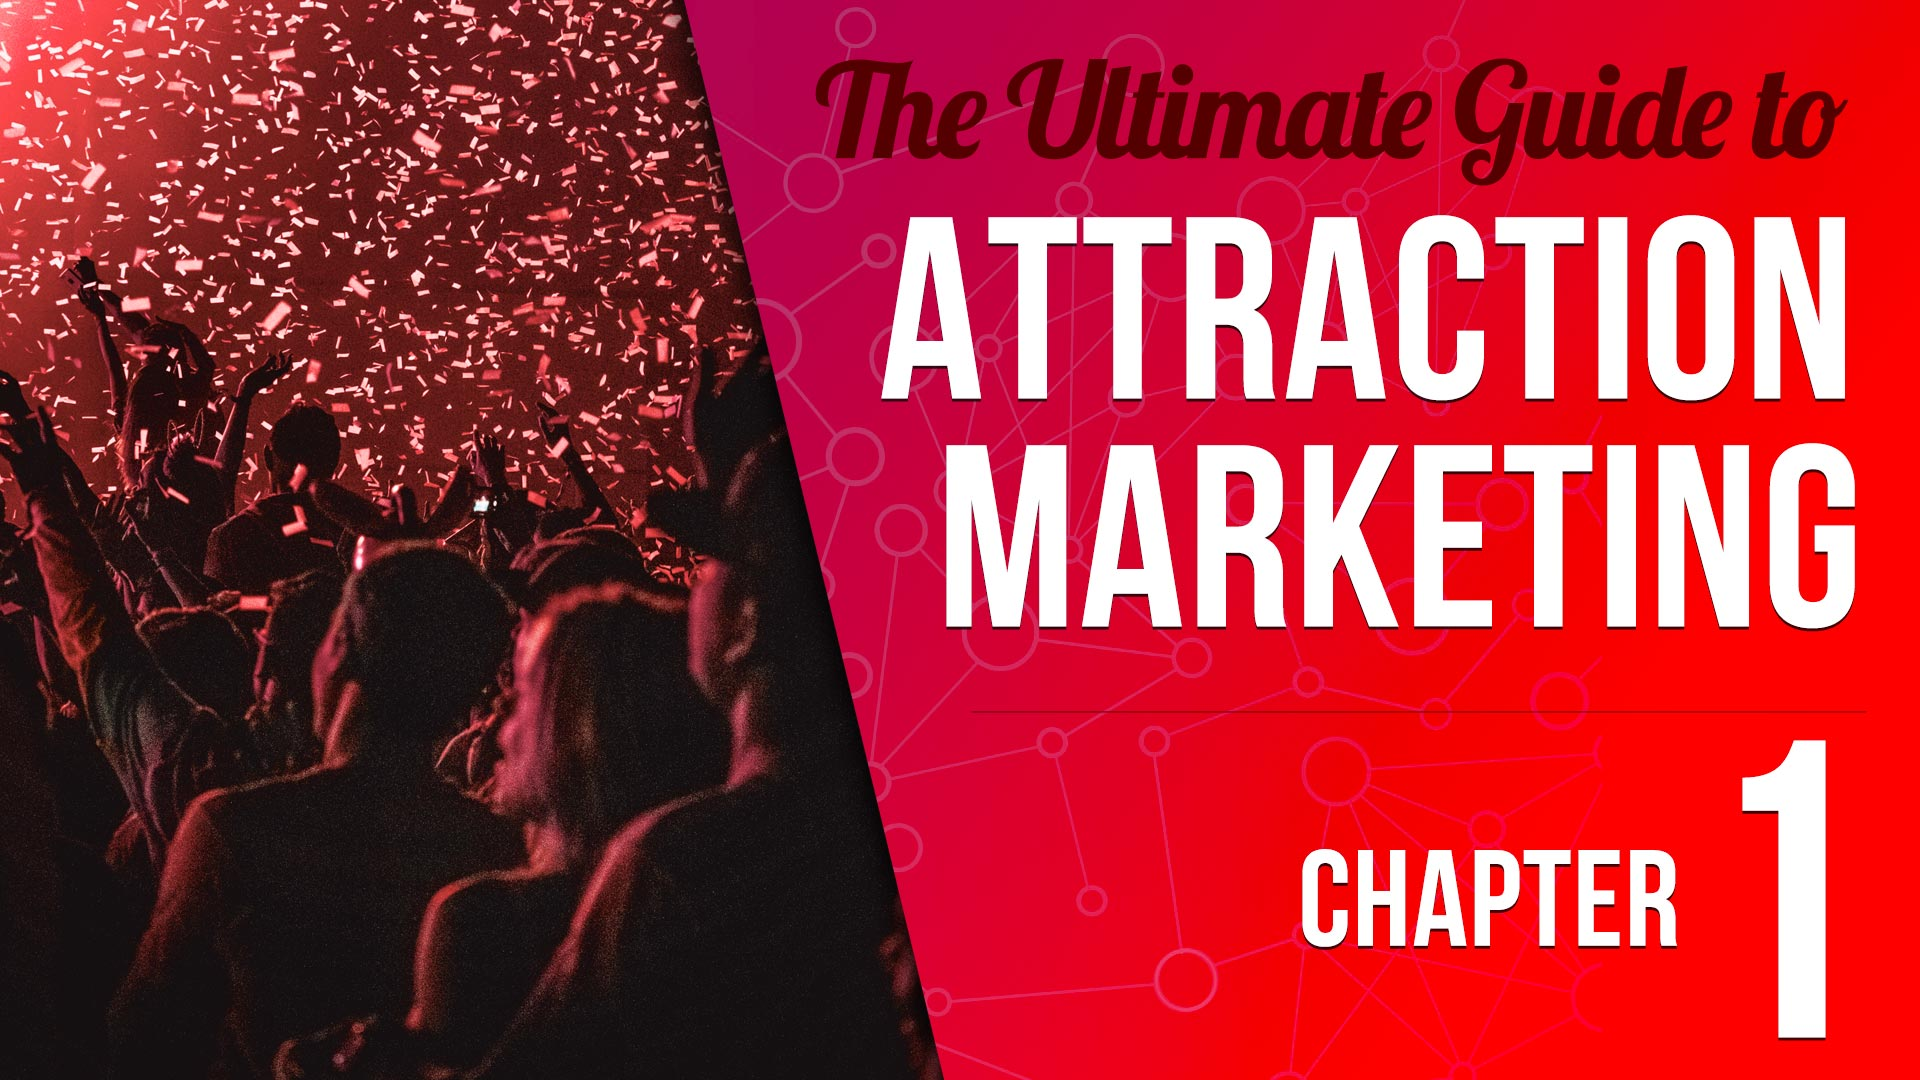 attraction-marketing-guide-chapter-1